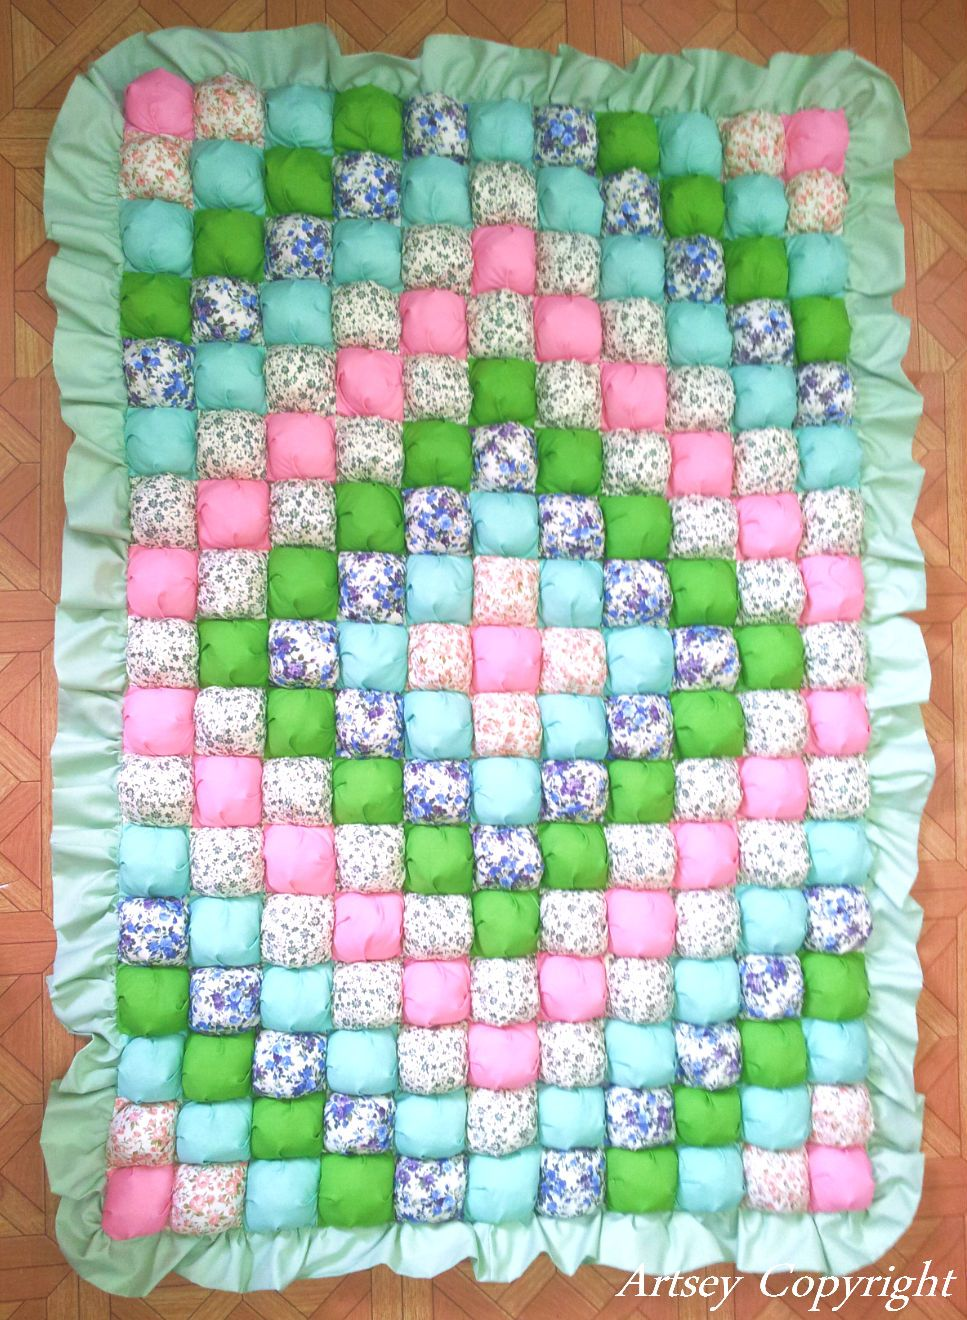 My latest biscuit quilt / bubble quilt / puff quilt | Bubble quilt ... : bubble blanket quilt - Adamdwight.com